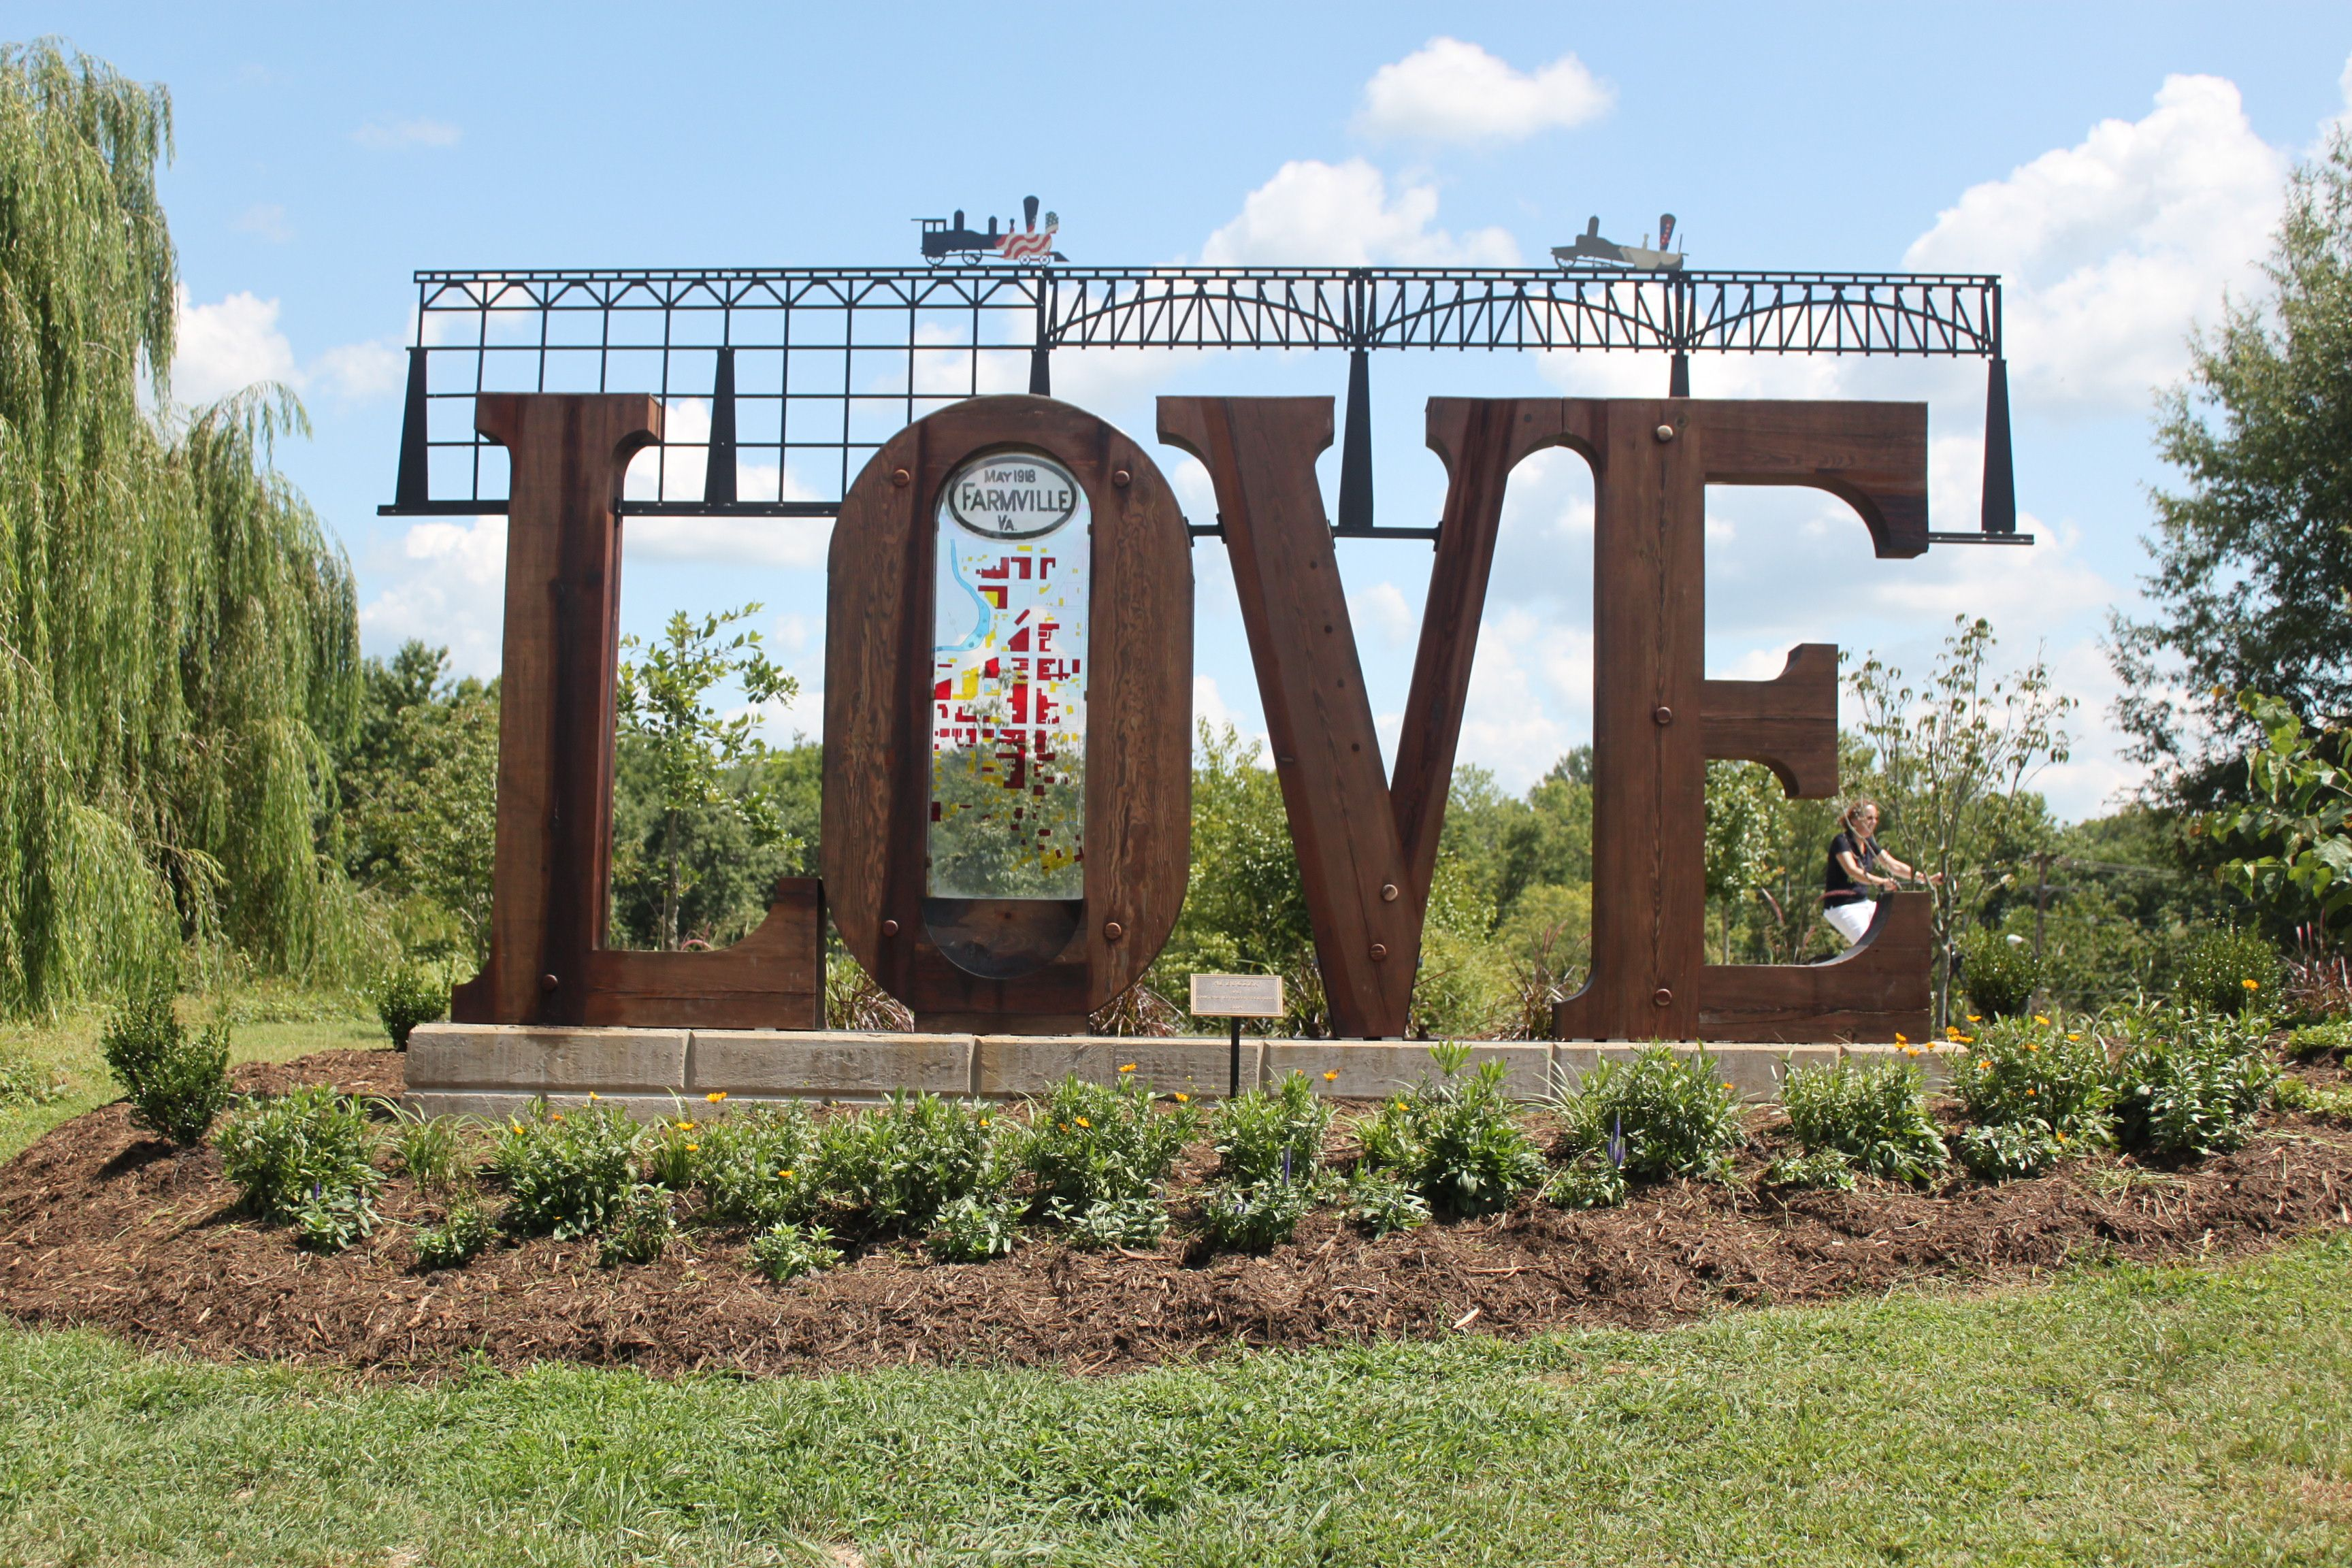 Love from Farmville, VA!